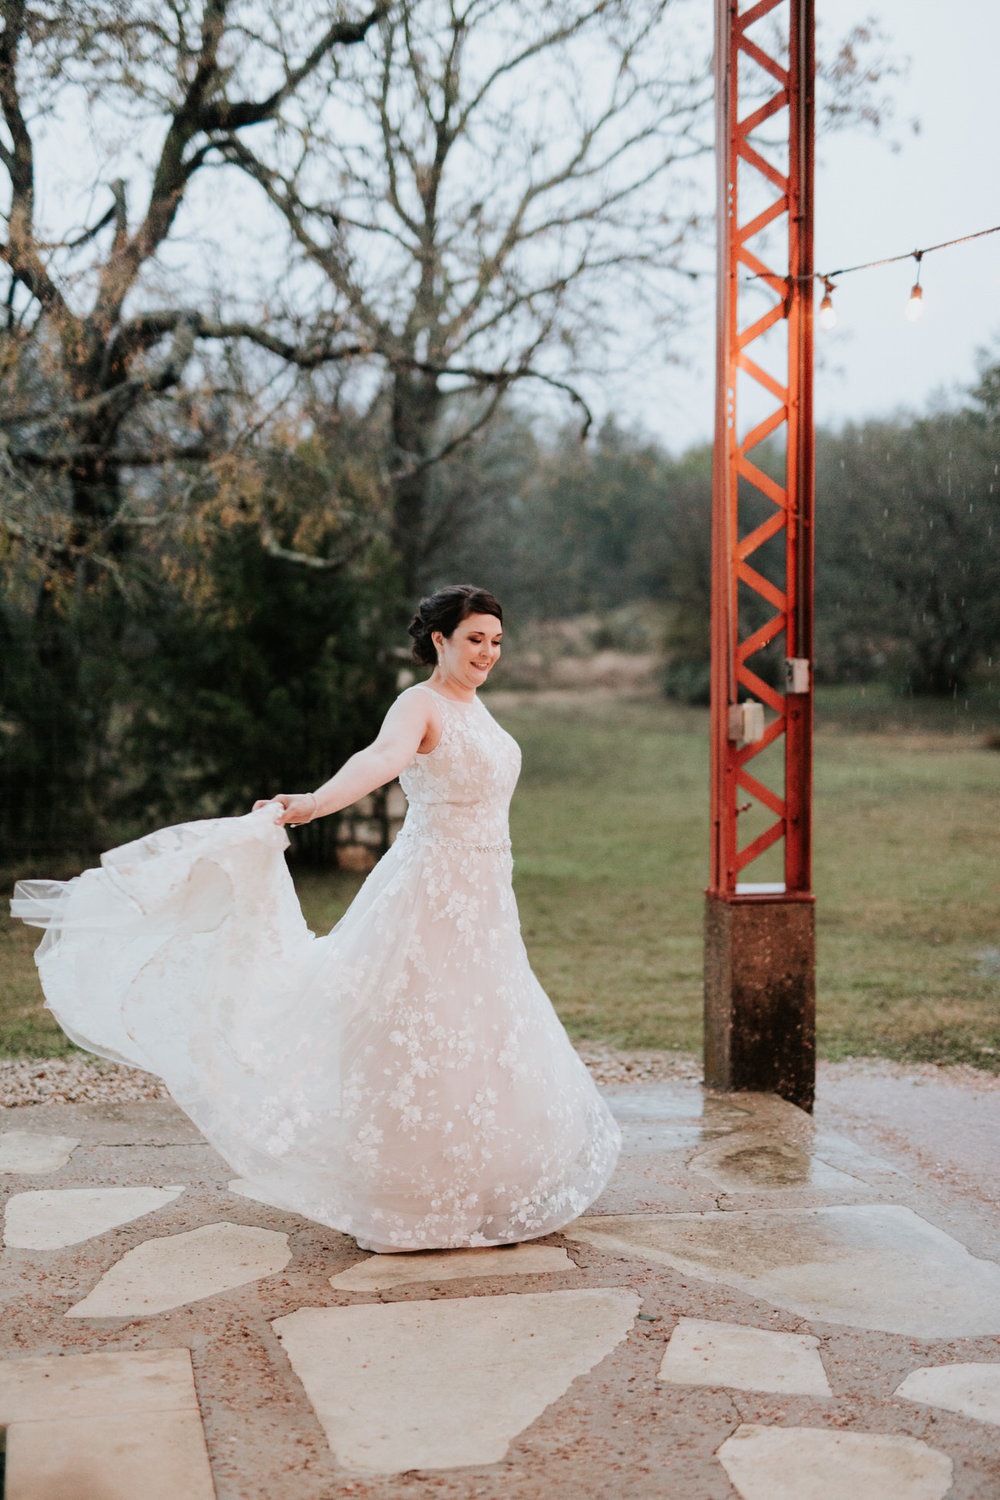 Bride twirling dress outside